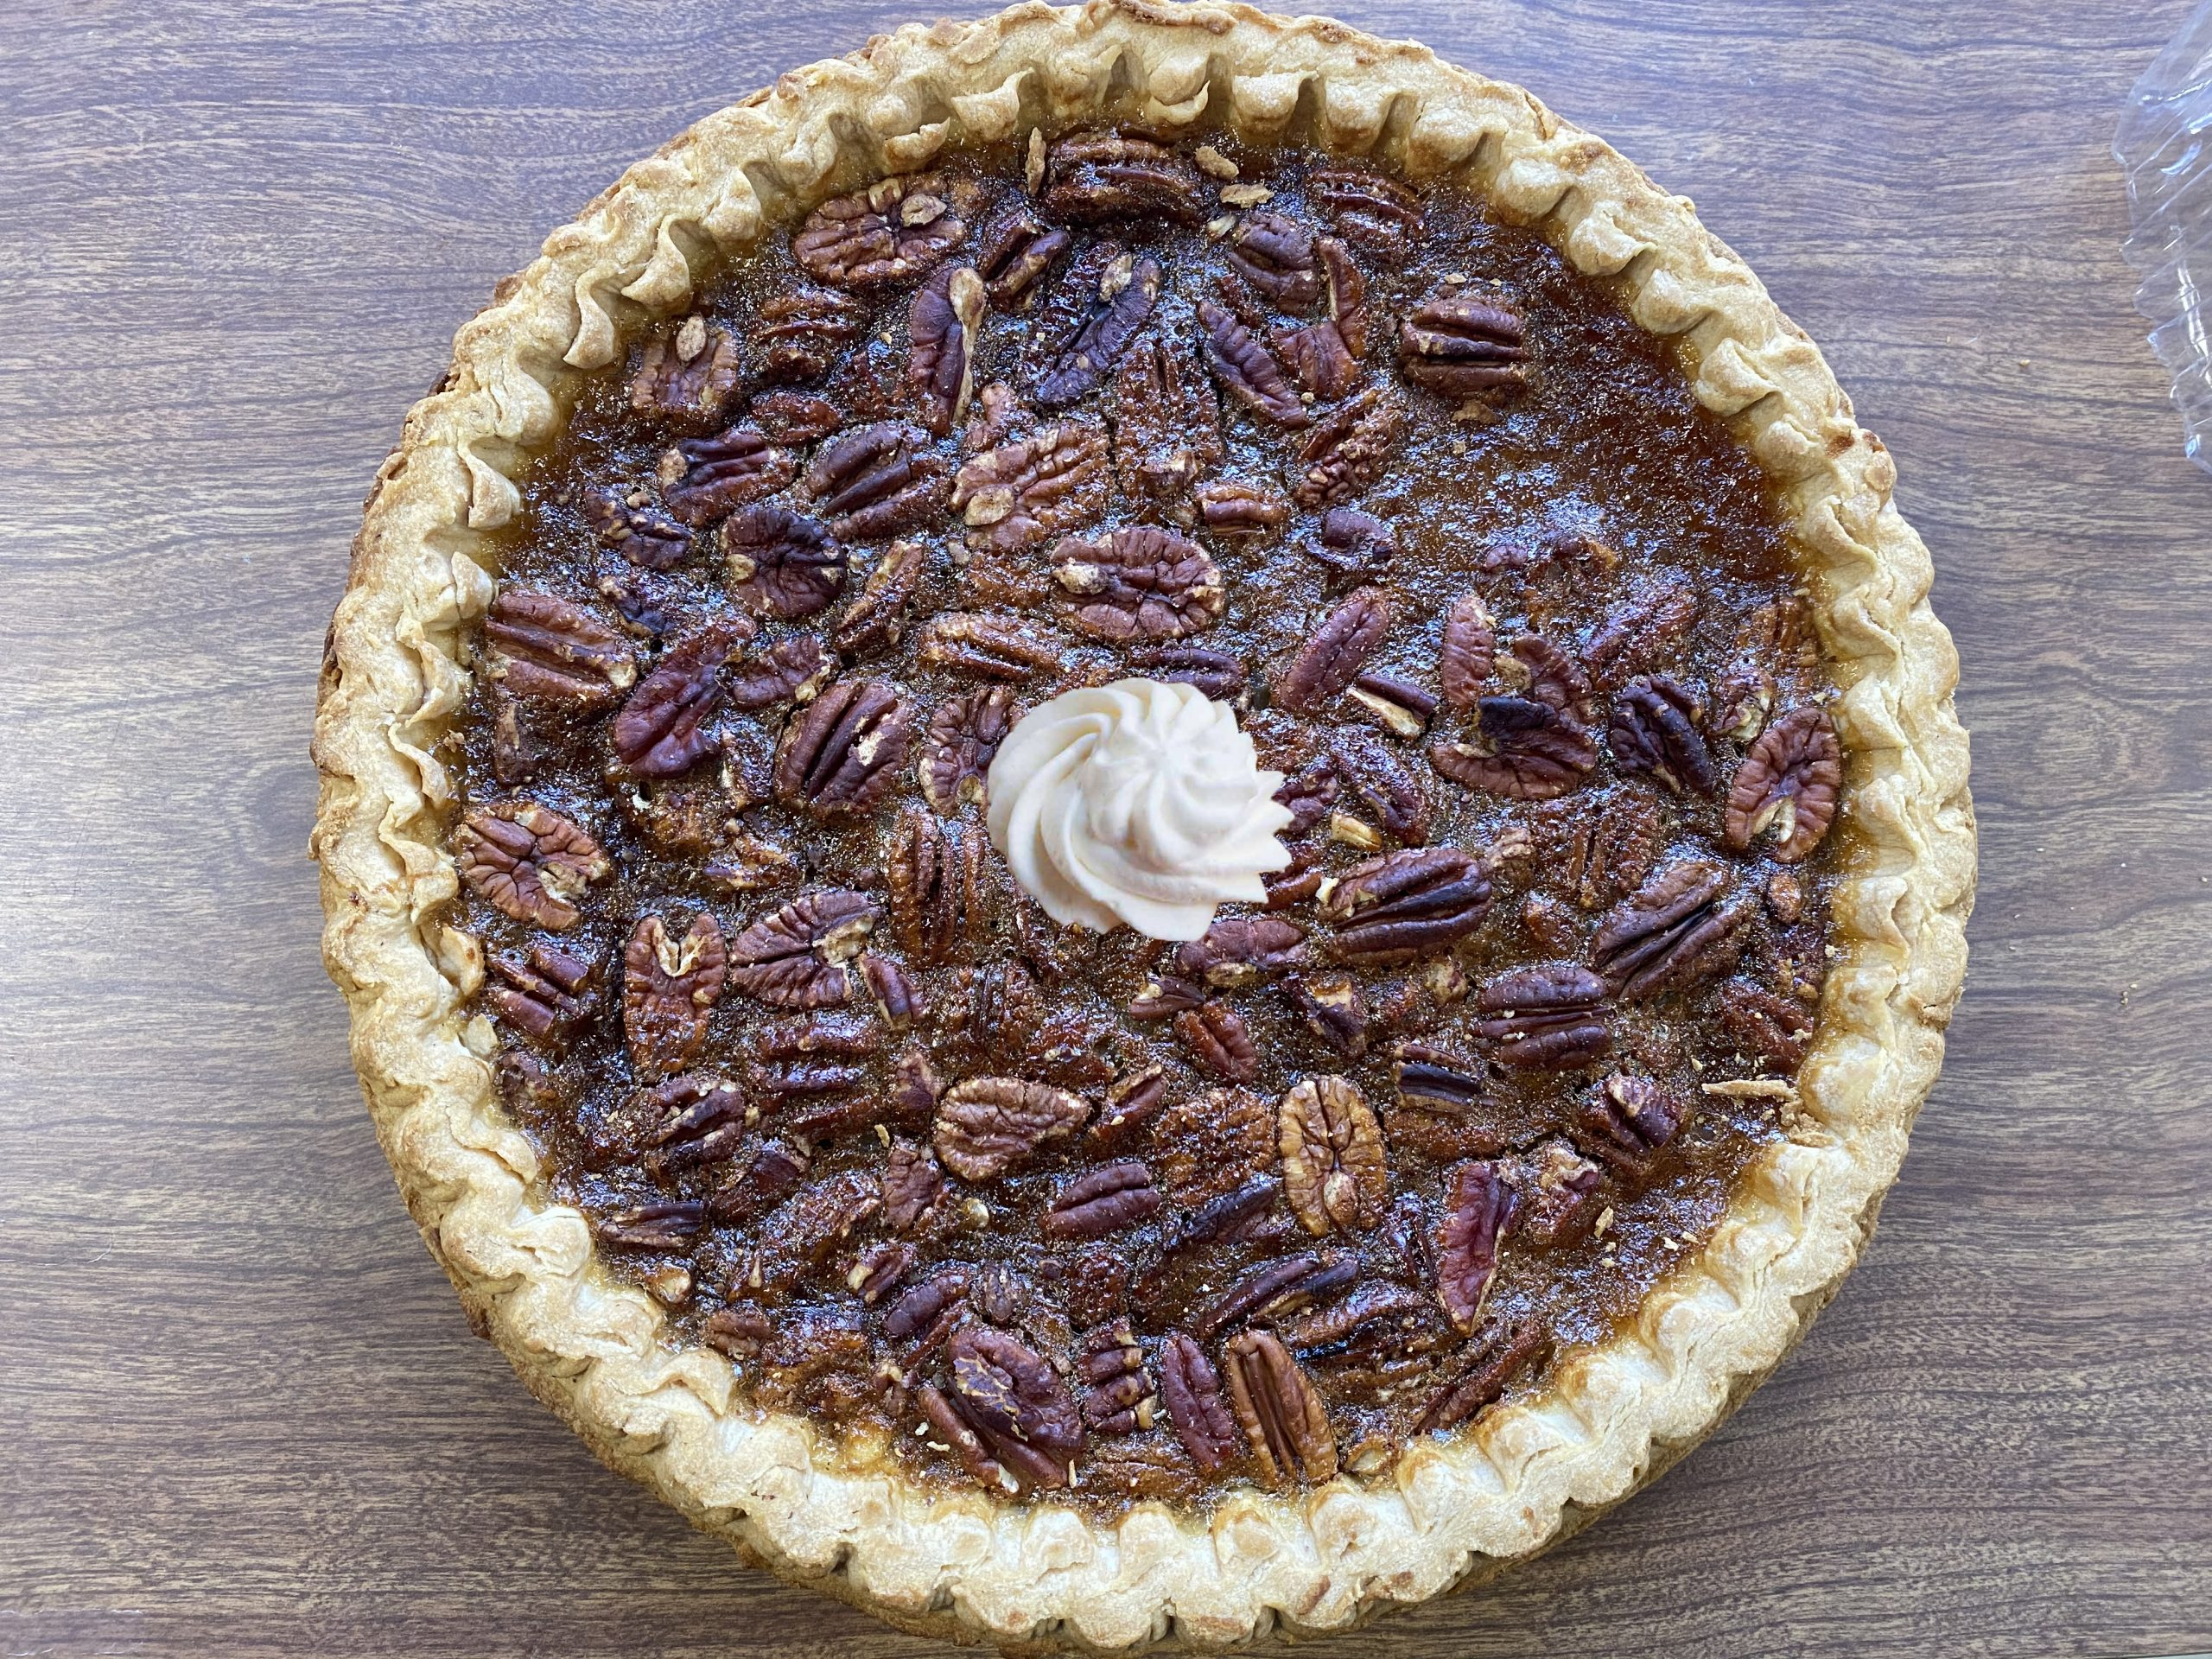 Pecan pie with whipped cream in the middle